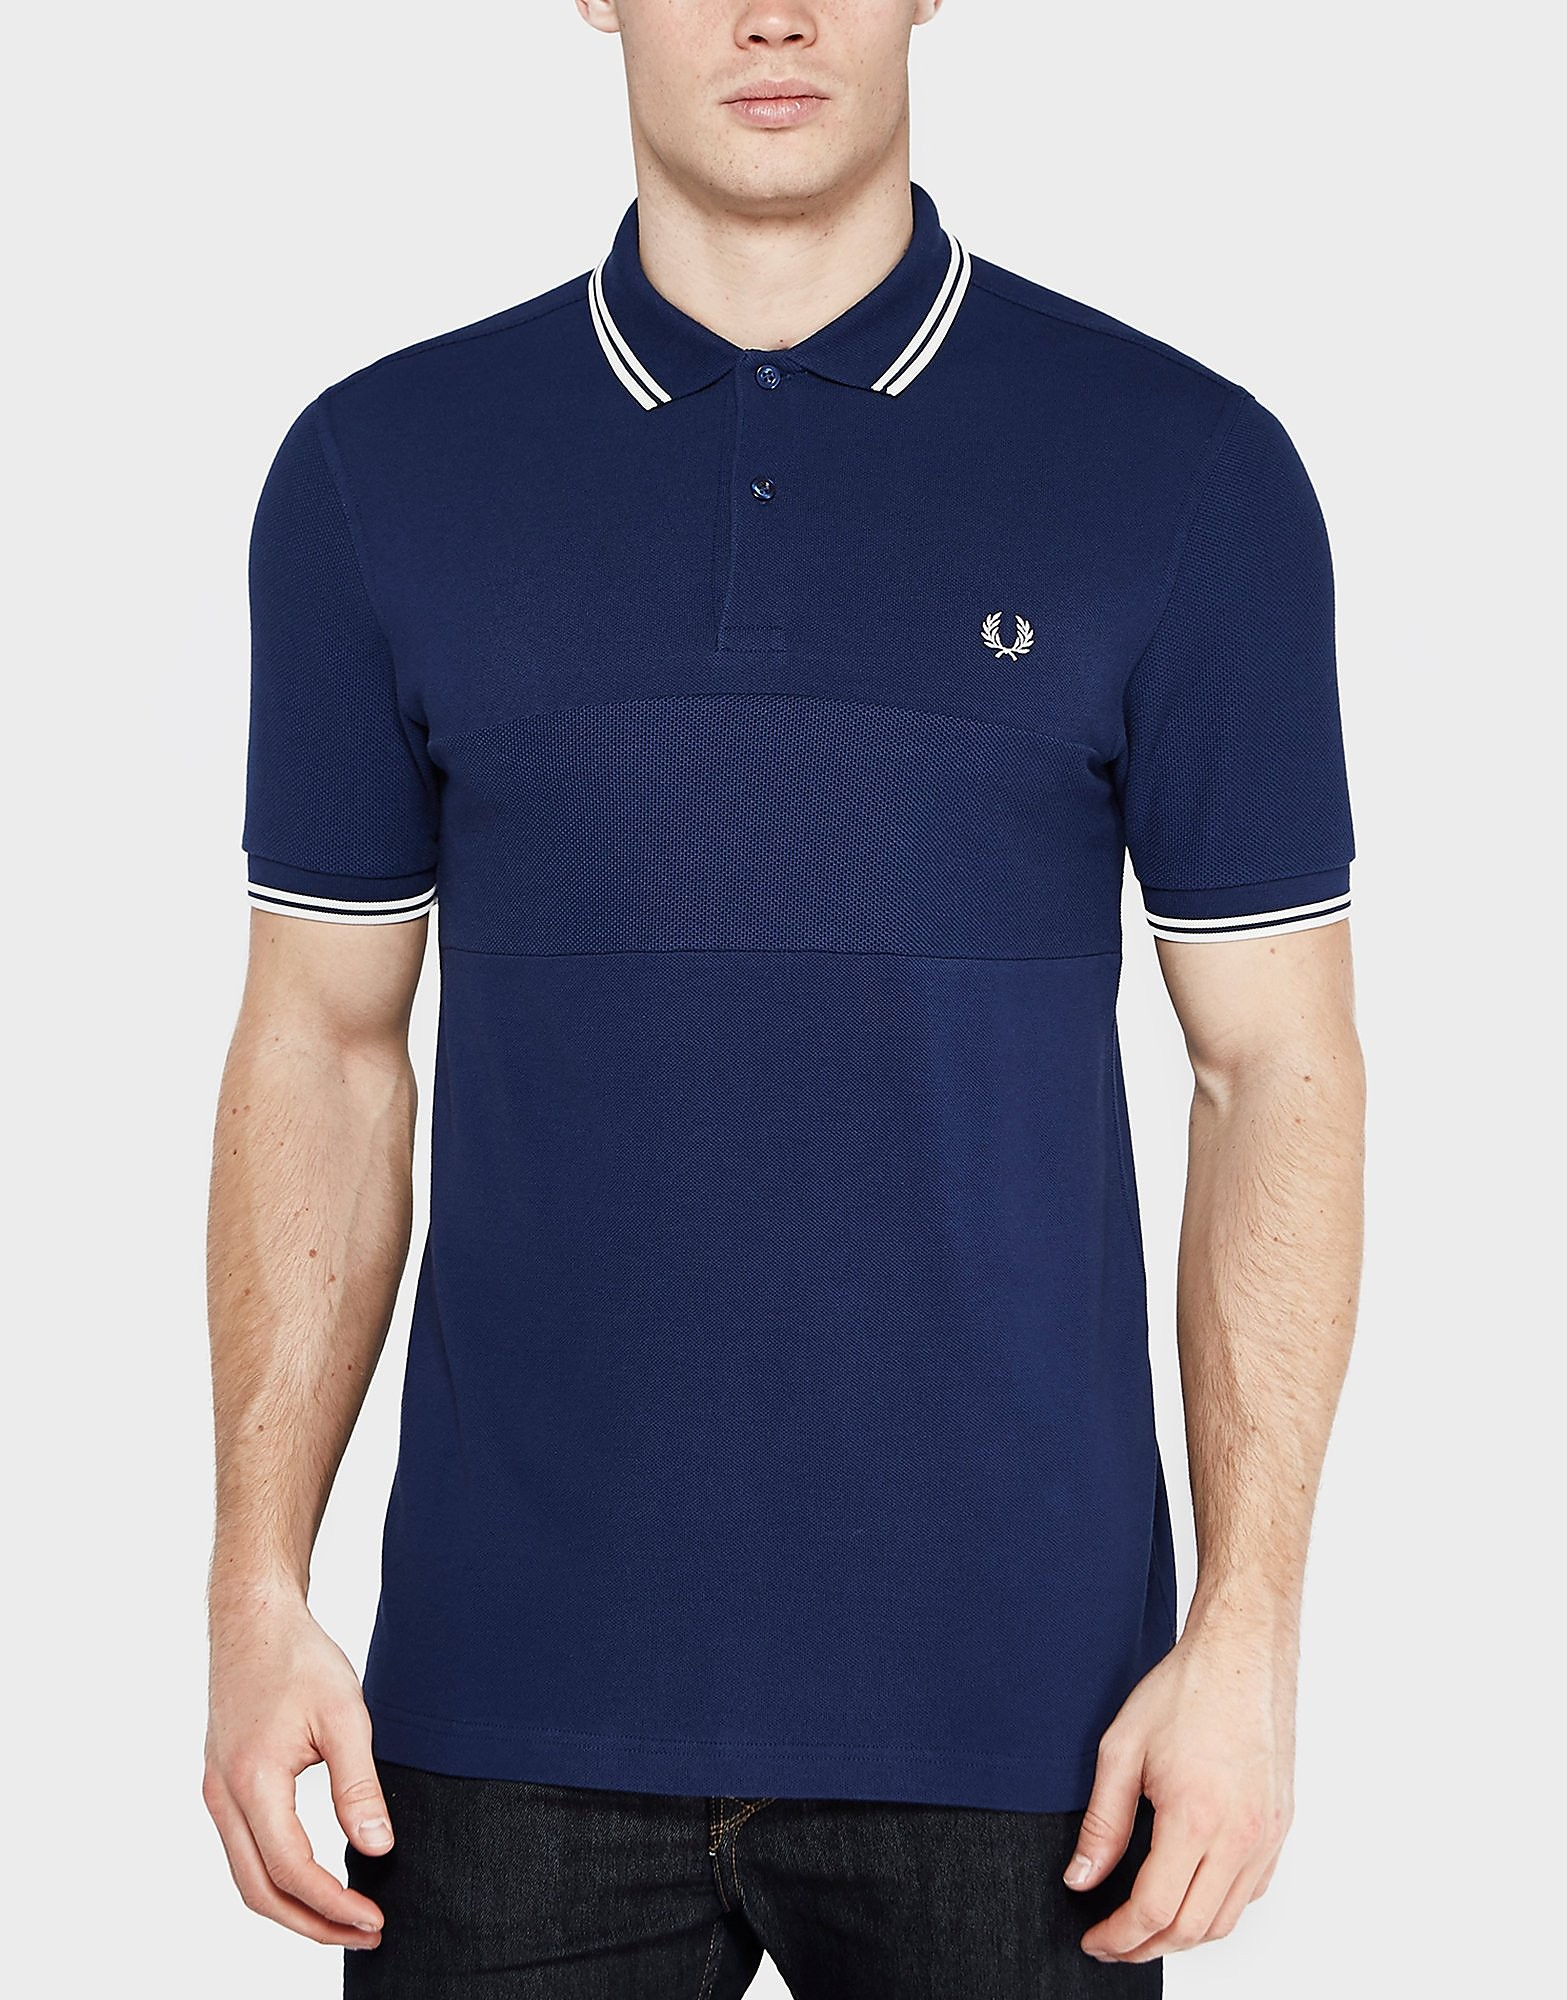 Fred Perry Textured Panel Short Sleeve Polo Shirt